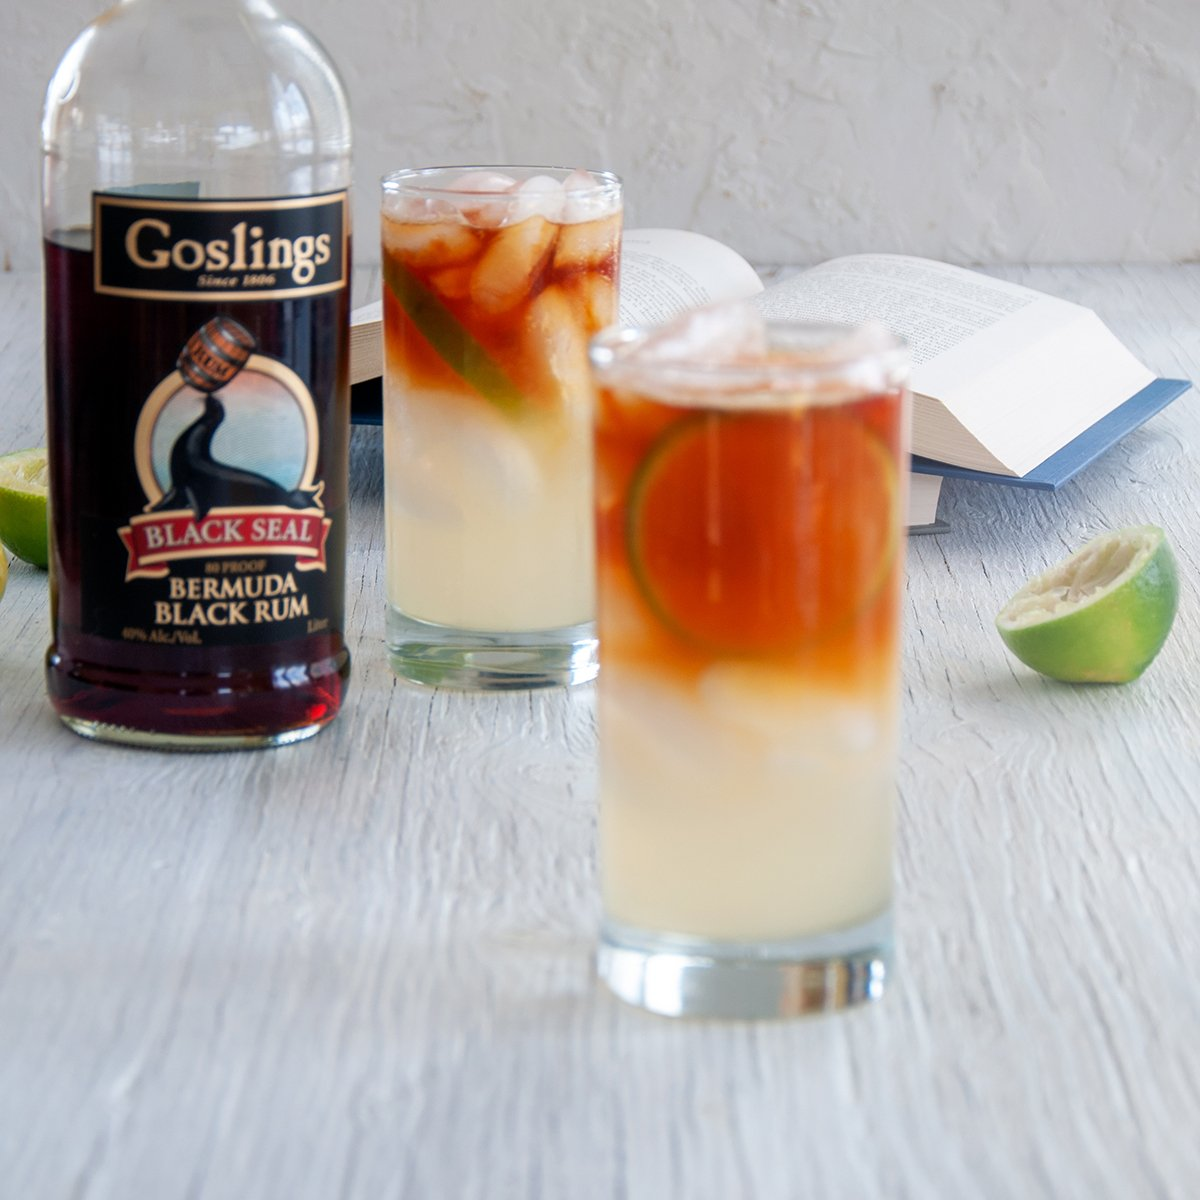 Two Dark 'n Stormy Cocktails with some Goslings Dark Rum in the background